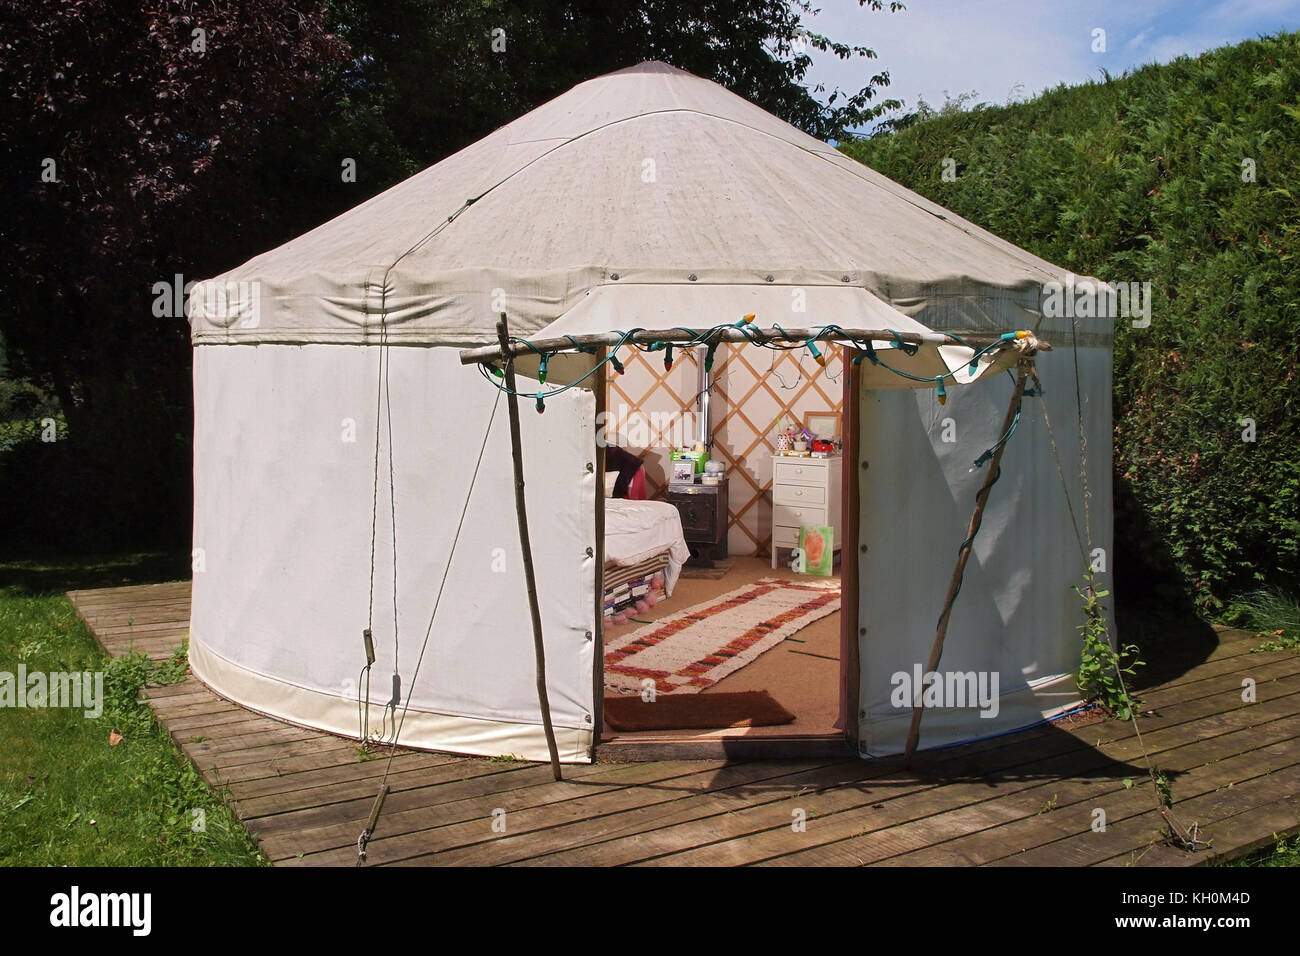 Perfect Emily Edgell With Her Garden Yurt.